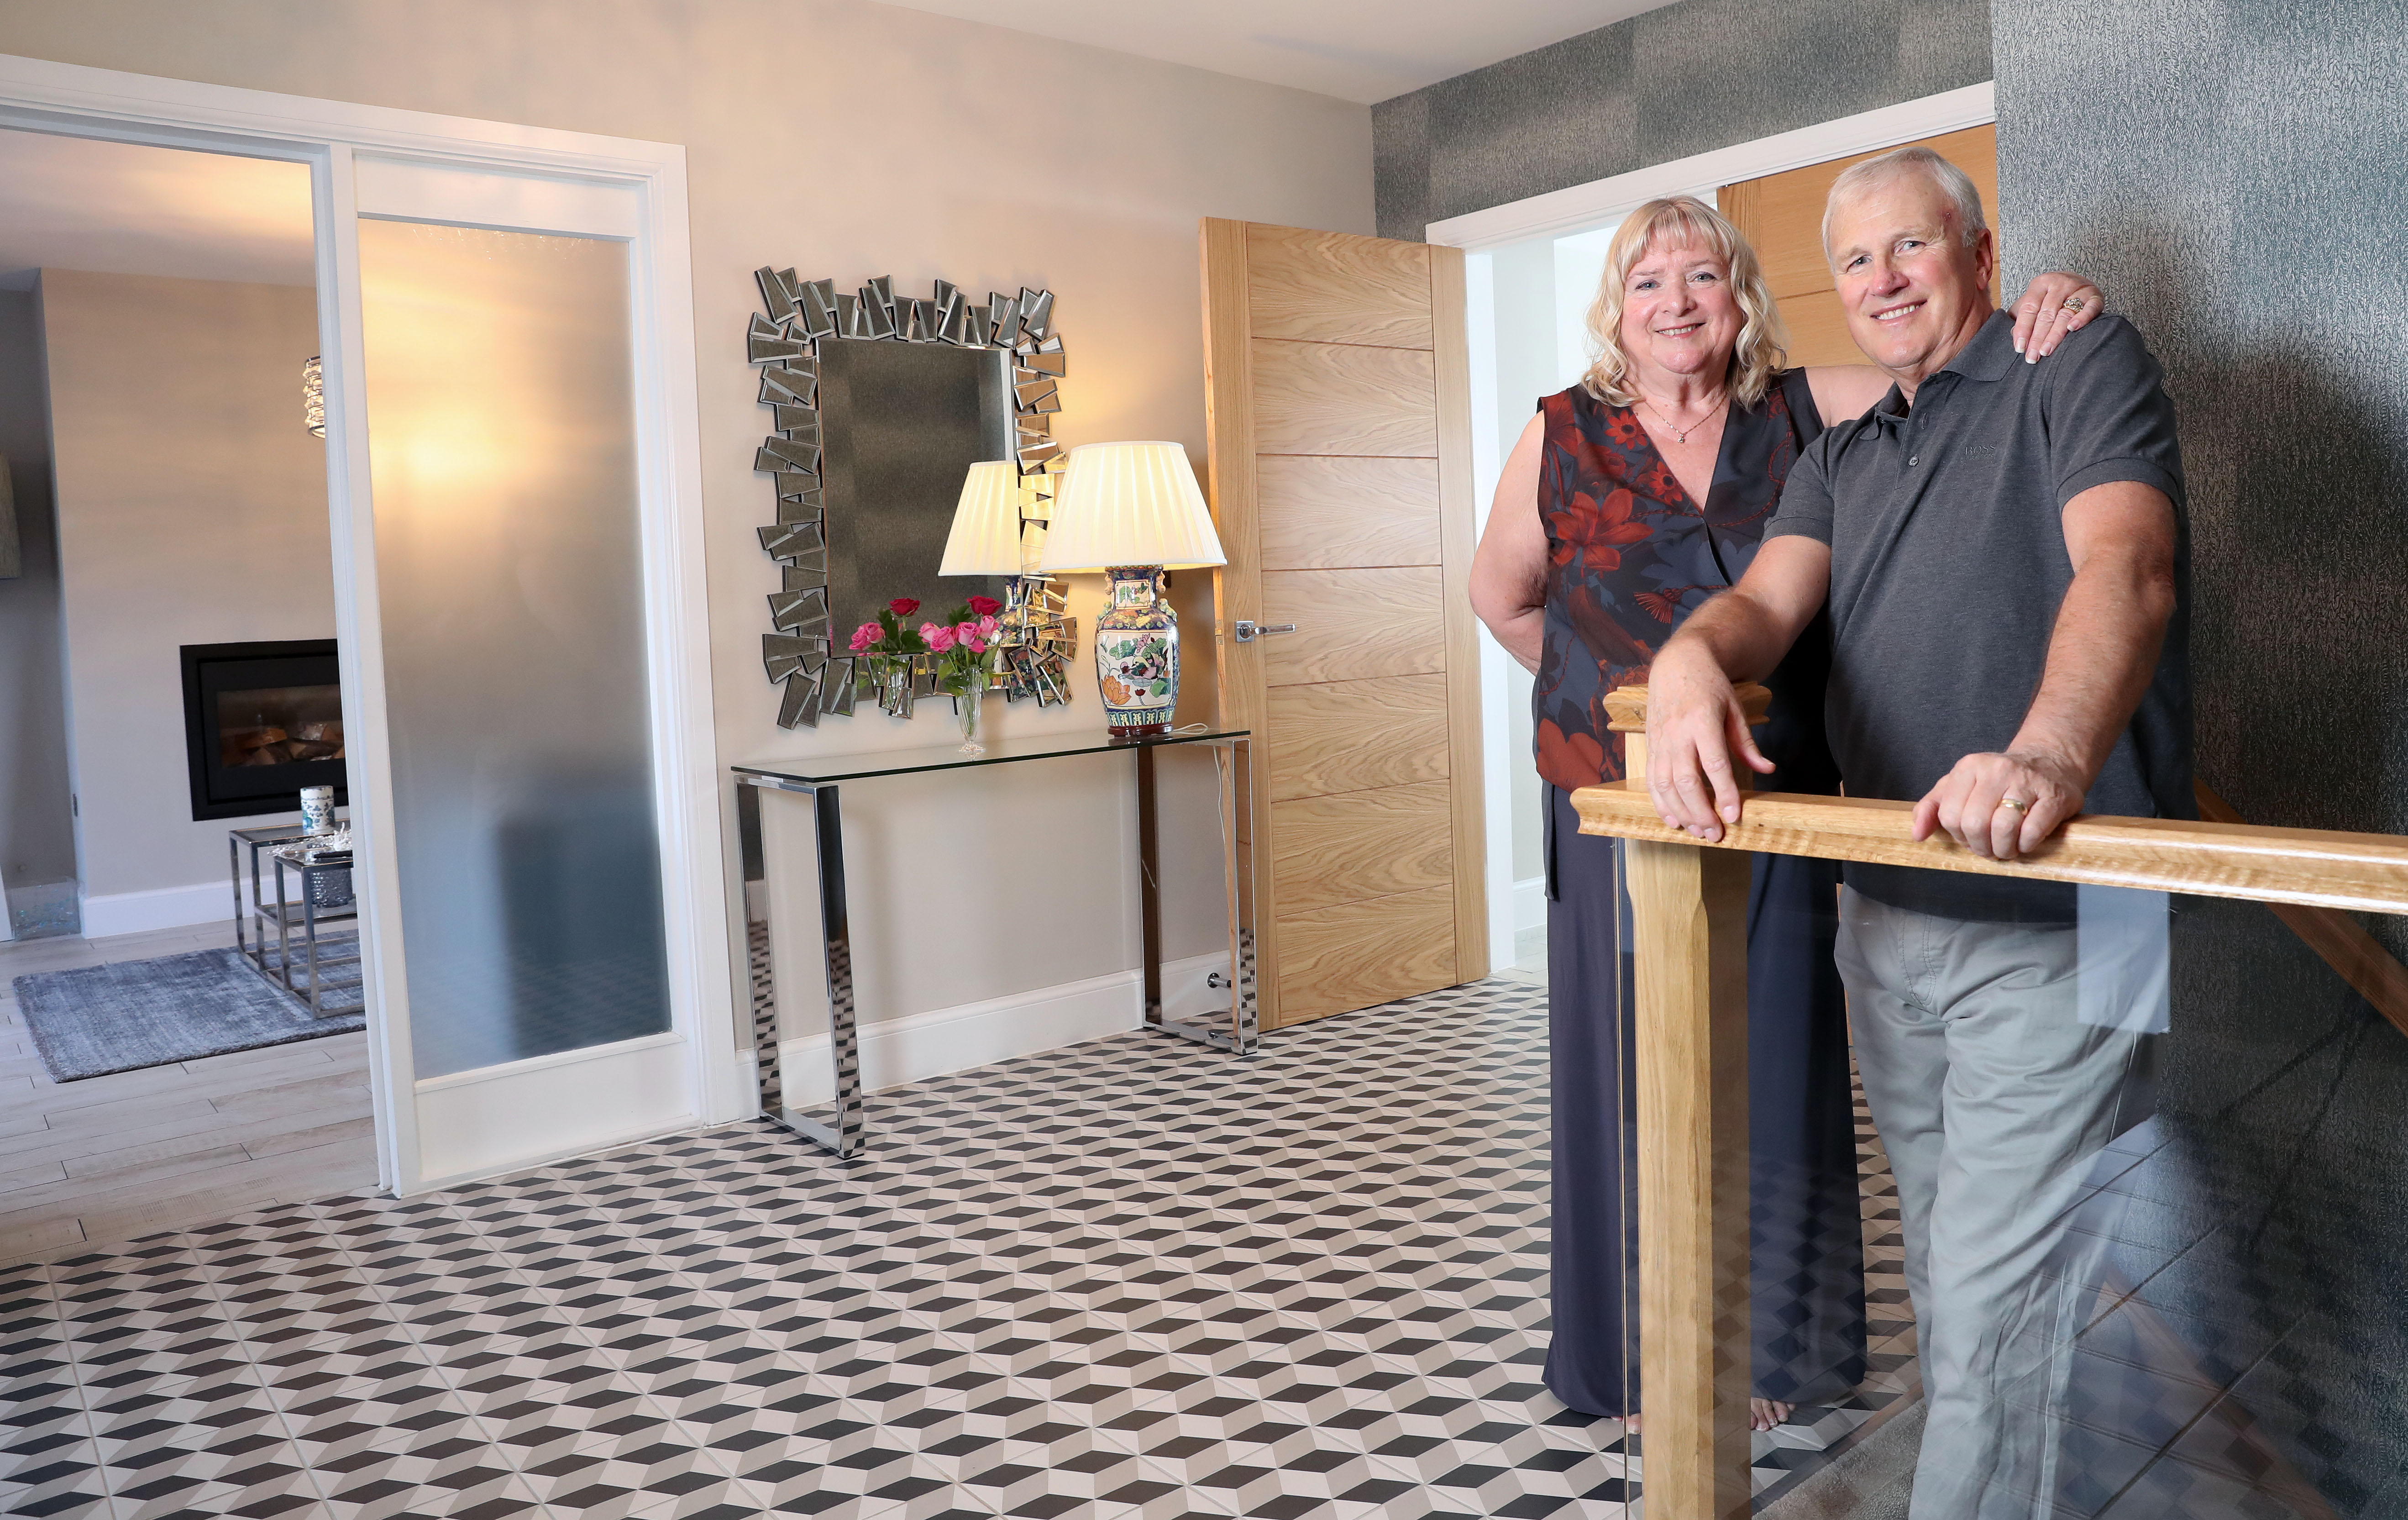 The couple moved back to Wales after more than thirty years in London